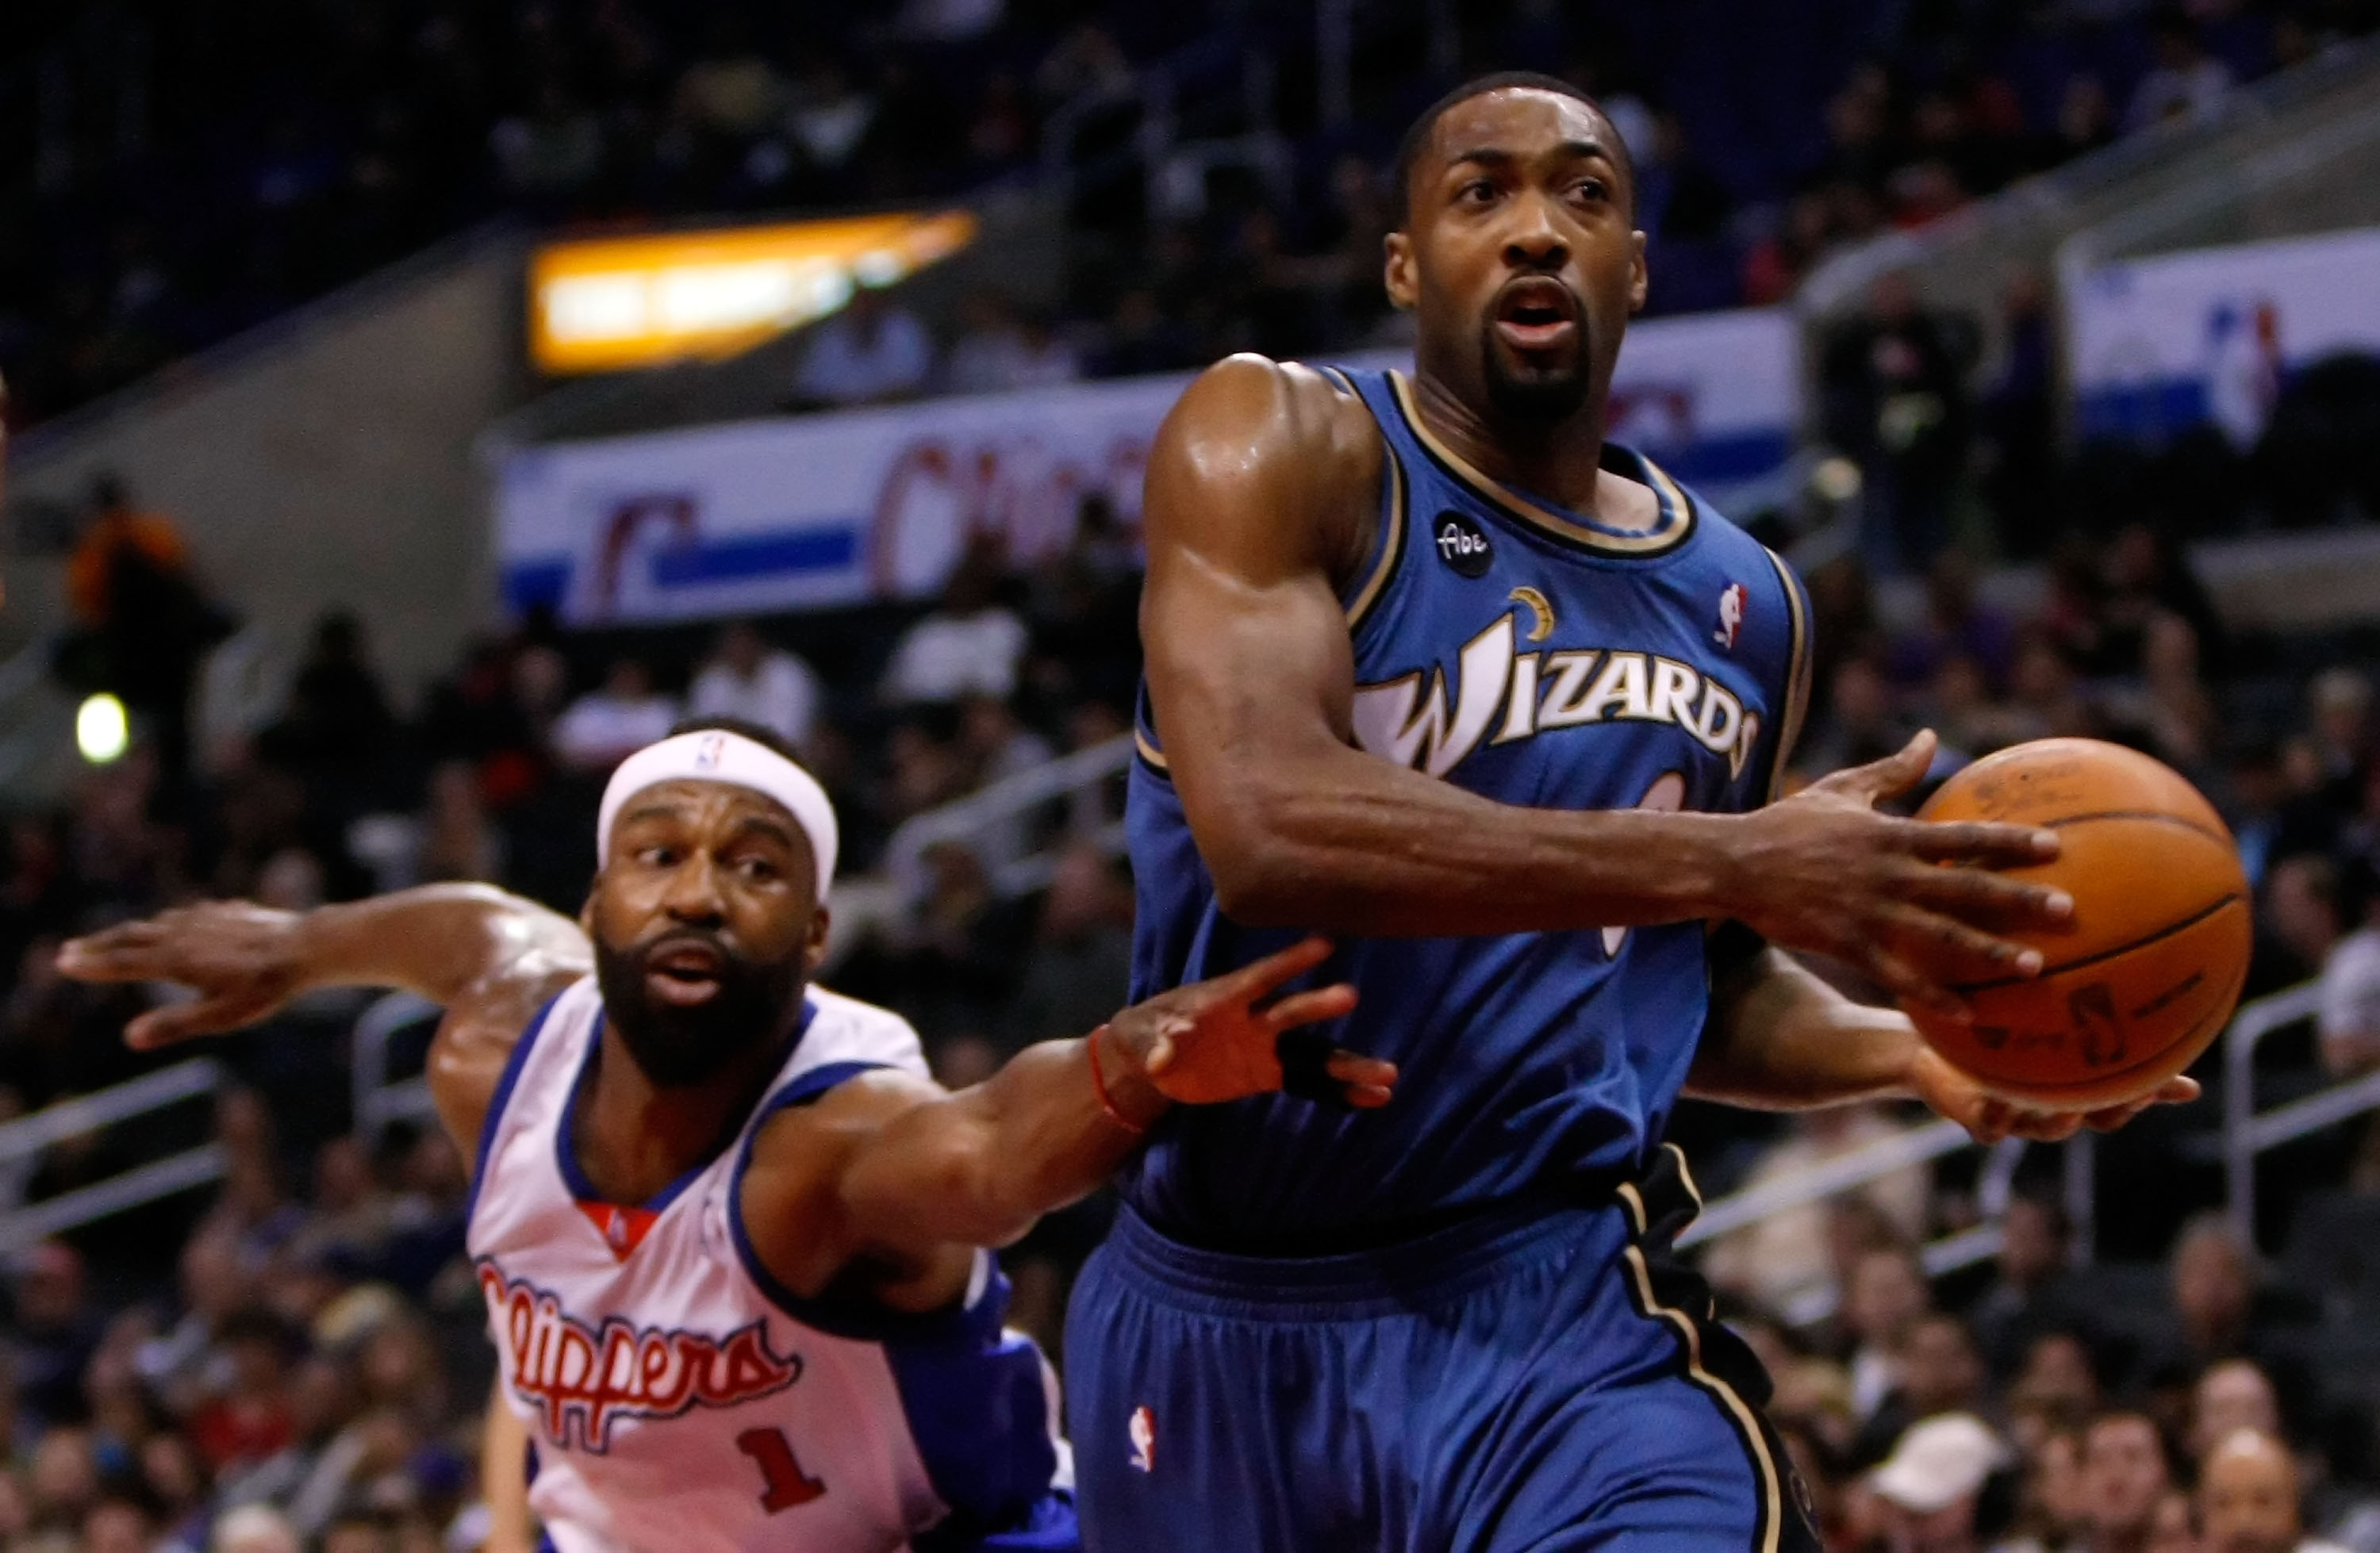 LOS ANGELES, CA - DECEMBER 14:  Gilbert Arenas #0 of the Washington Wizards drives to the basket as Baron Davis #1 of the Los Angeles Clippers lunges to steal the ball in the first half at Staples Center on December 14, 2009 in Los Angeles, California. NO